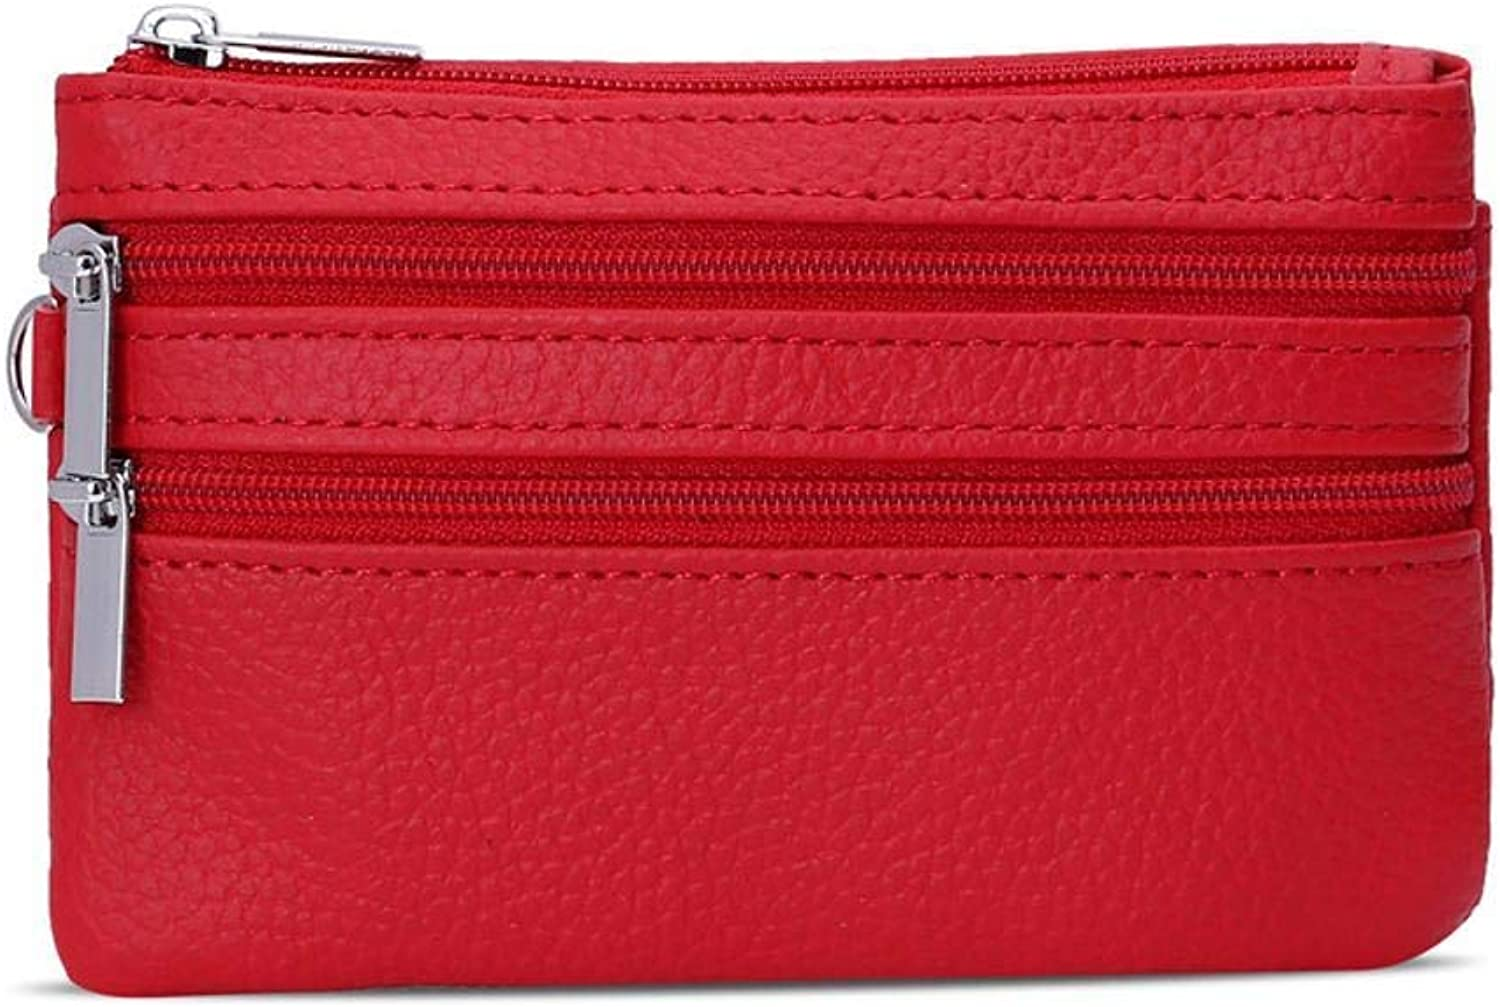 Girls Purse Women's Wallet Lady Purse Wallet Lady Key Bag Deposit Cheque 14  9  1.3cm